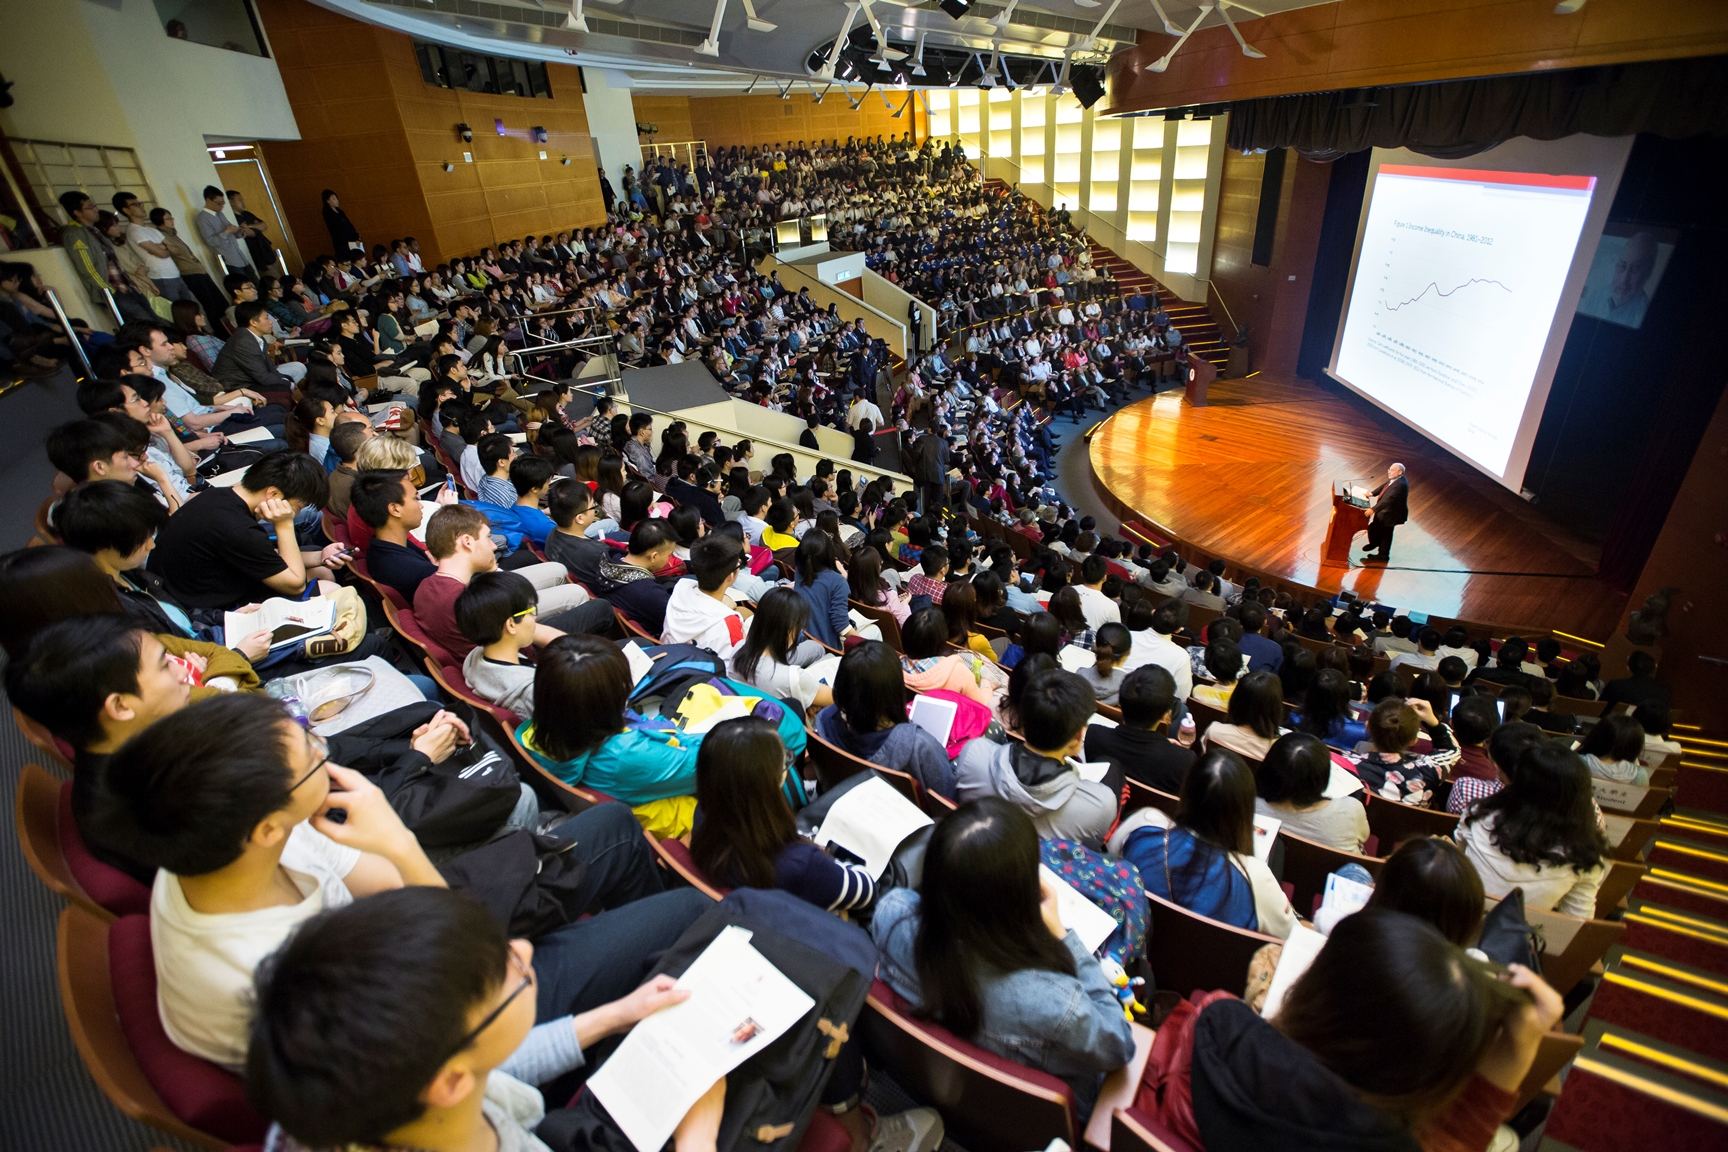 The Nobel lecture attracts a full-house audience.